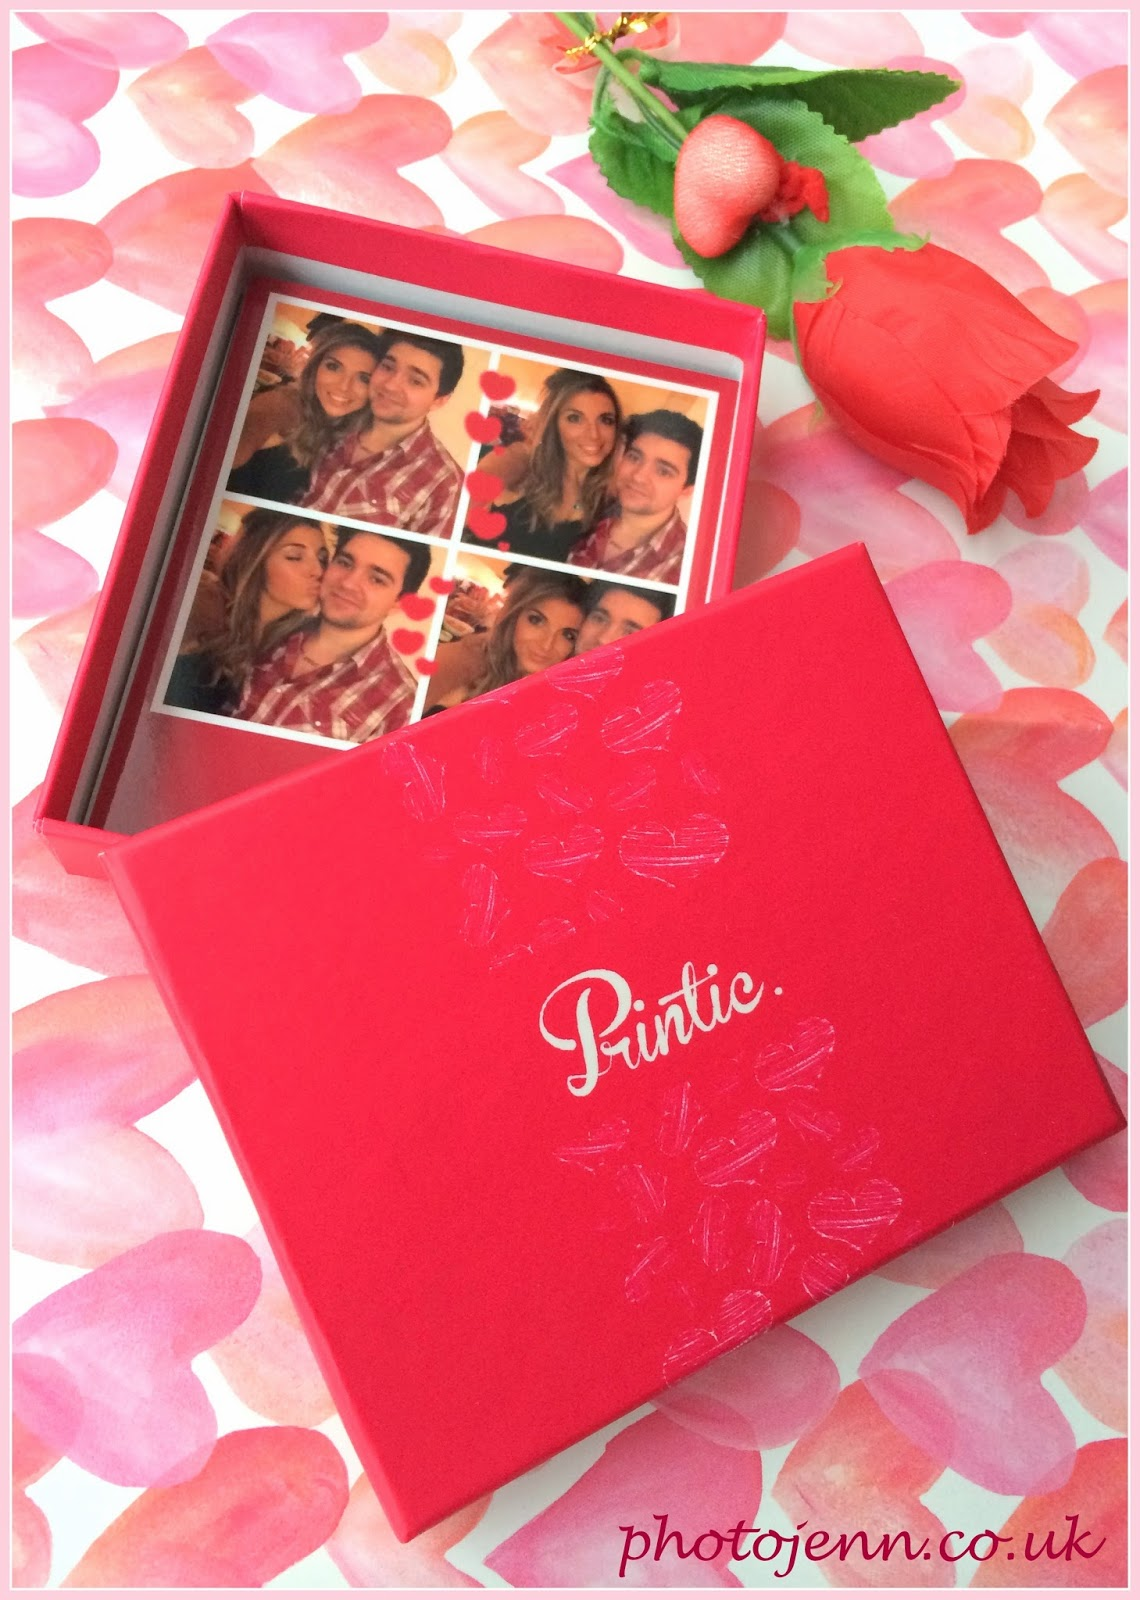 printic-app-valentine's-printed-instagram-photos-review